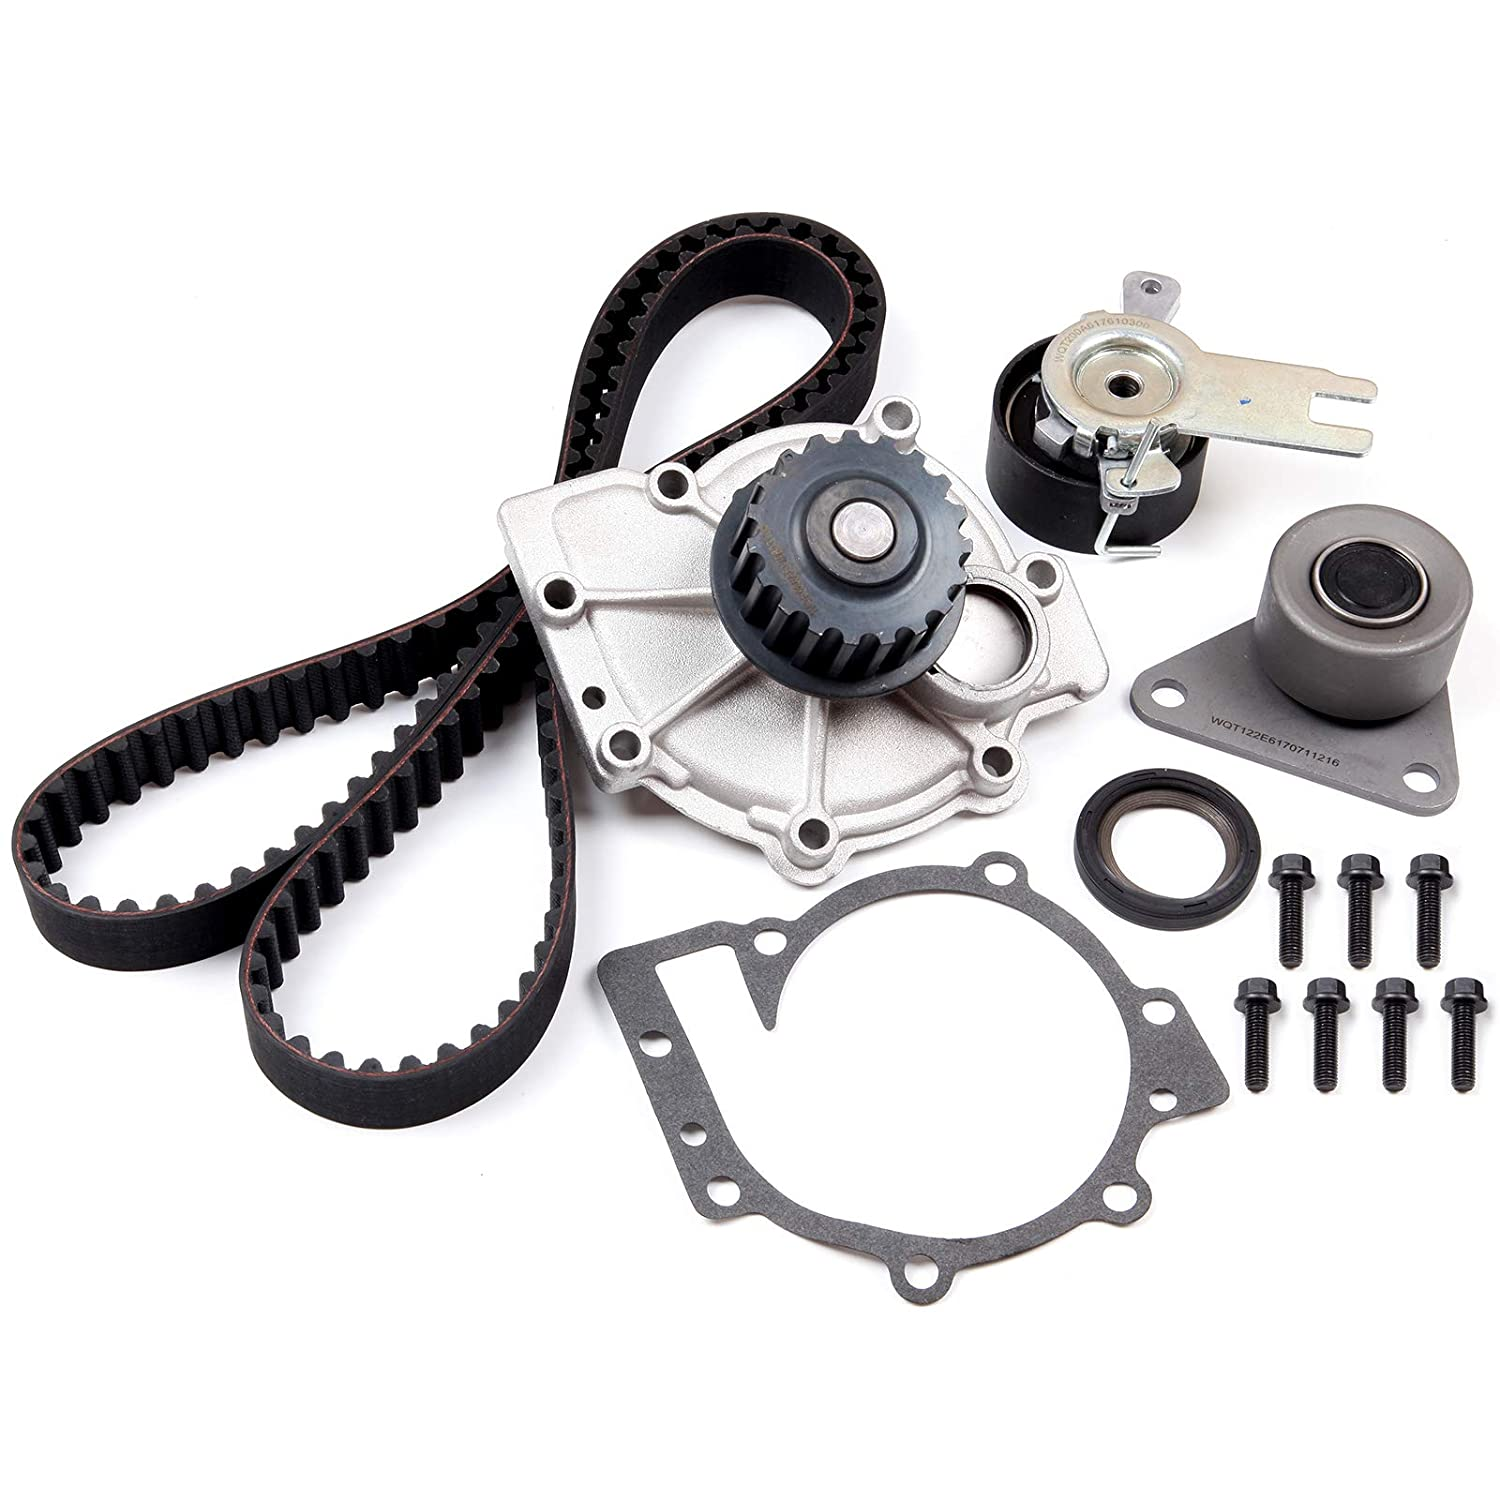 OCPTY Timing Belt Kit Including Timing Belt Water Pump with Gasket tensioner Bearing etc Compatible for 07 08 09 10 11 12 13 Volvo C30//01 02 03 04 05 06 07 08 09 12 13 14 15 Volvo S60